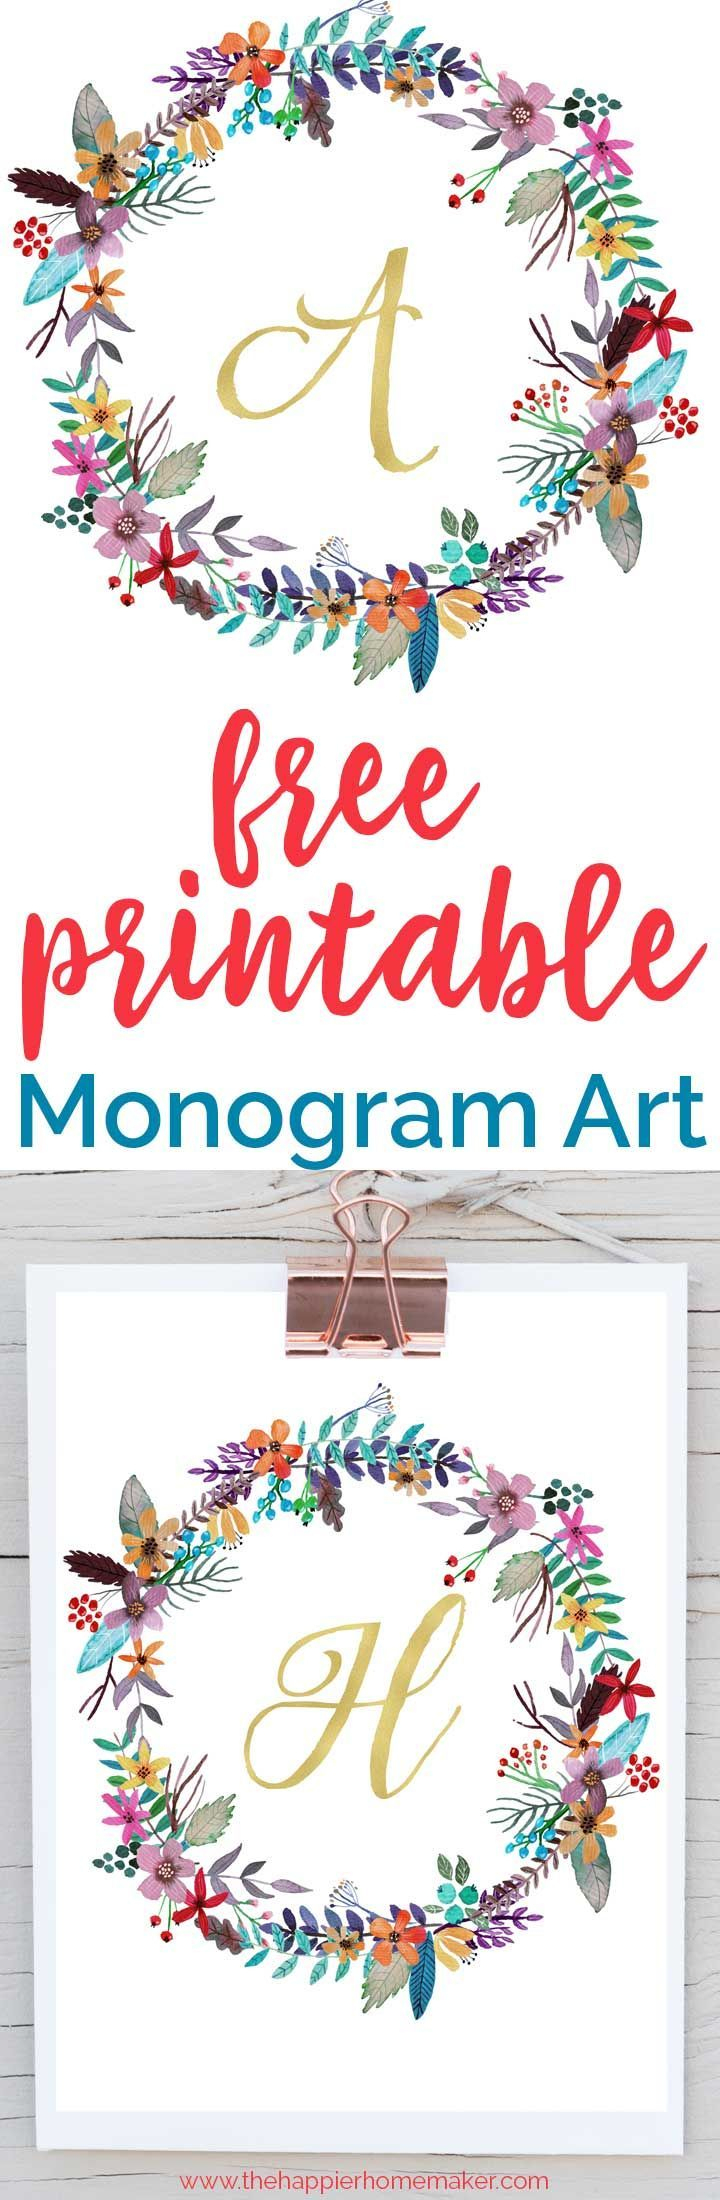 Free Printable Monogram Art | Free Printables | Pinterest | Free - Free Printable Monogram